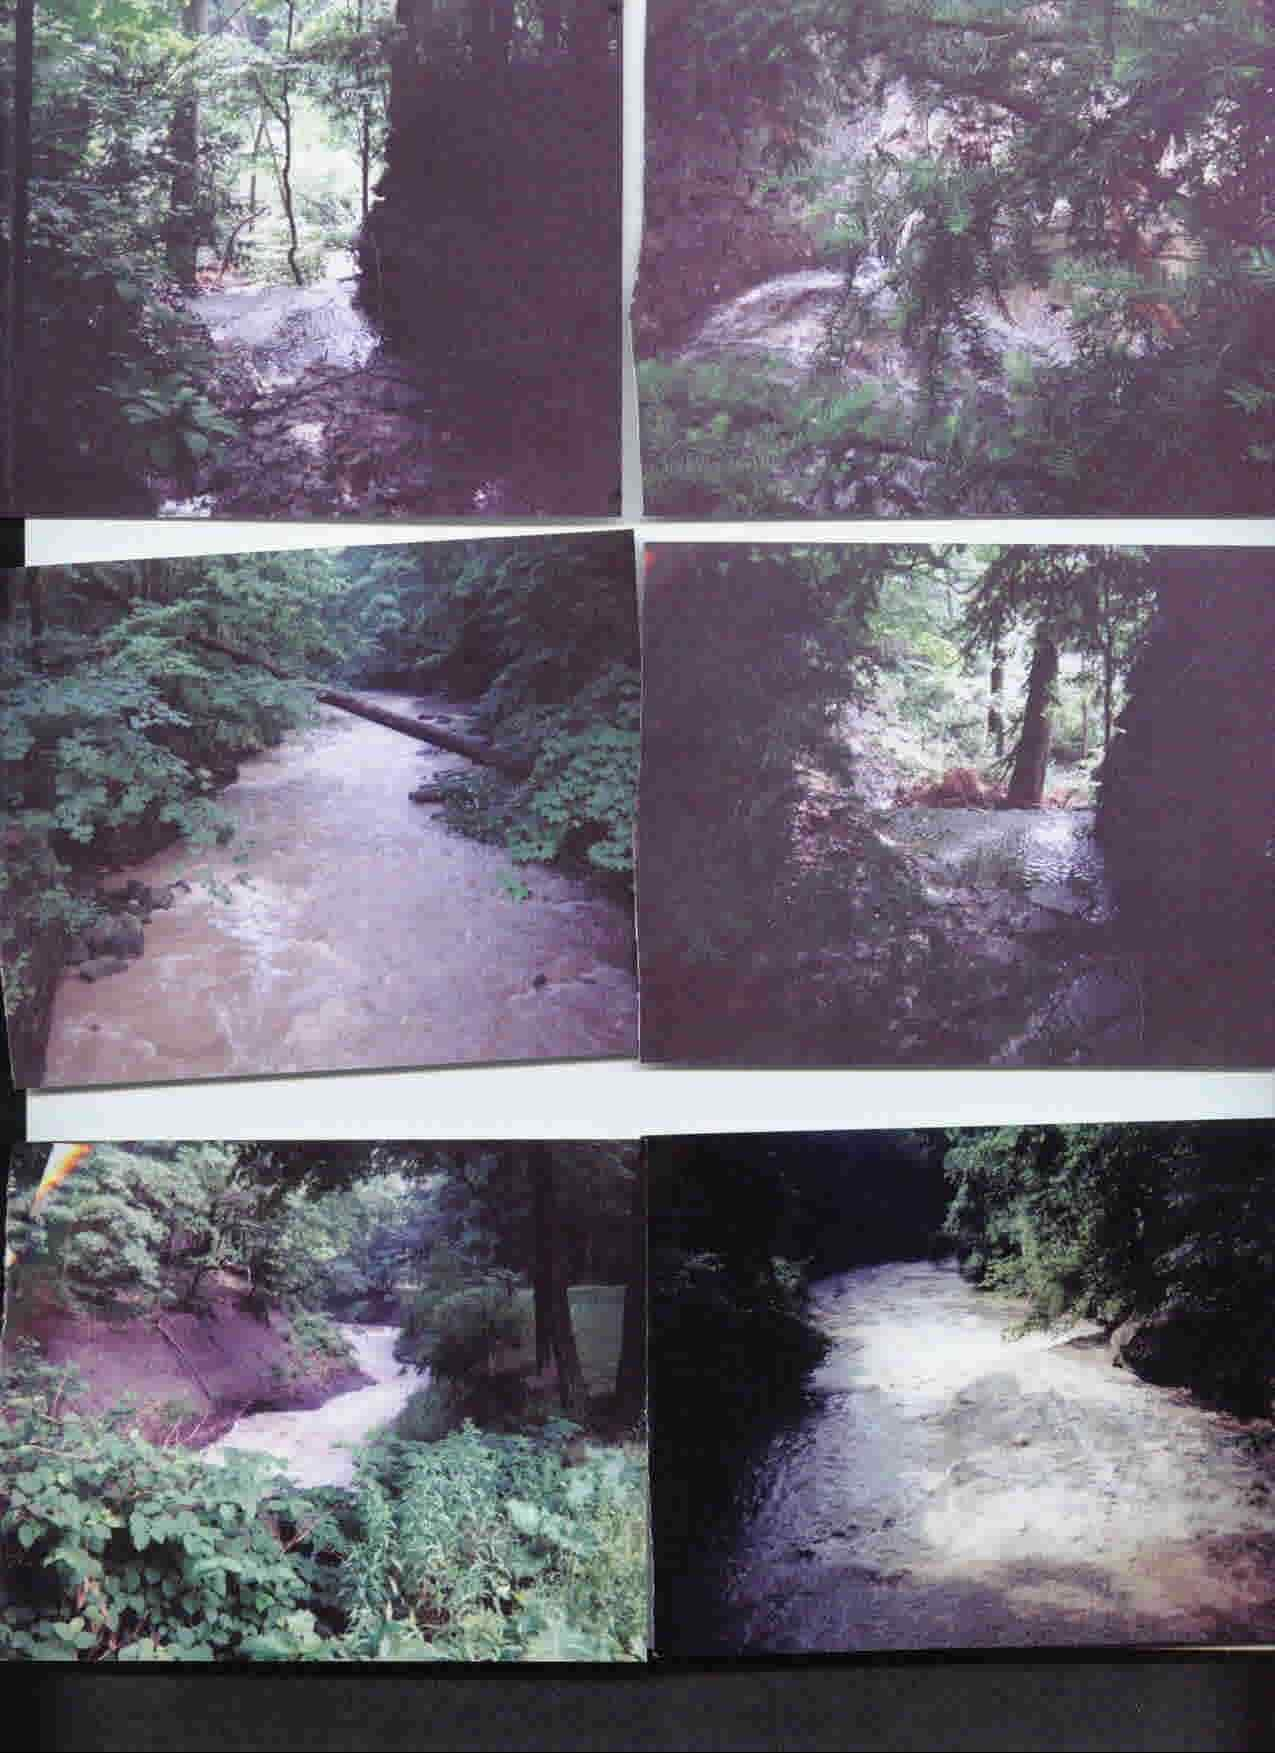 Euclid Creek Reservation Hiking Pictures